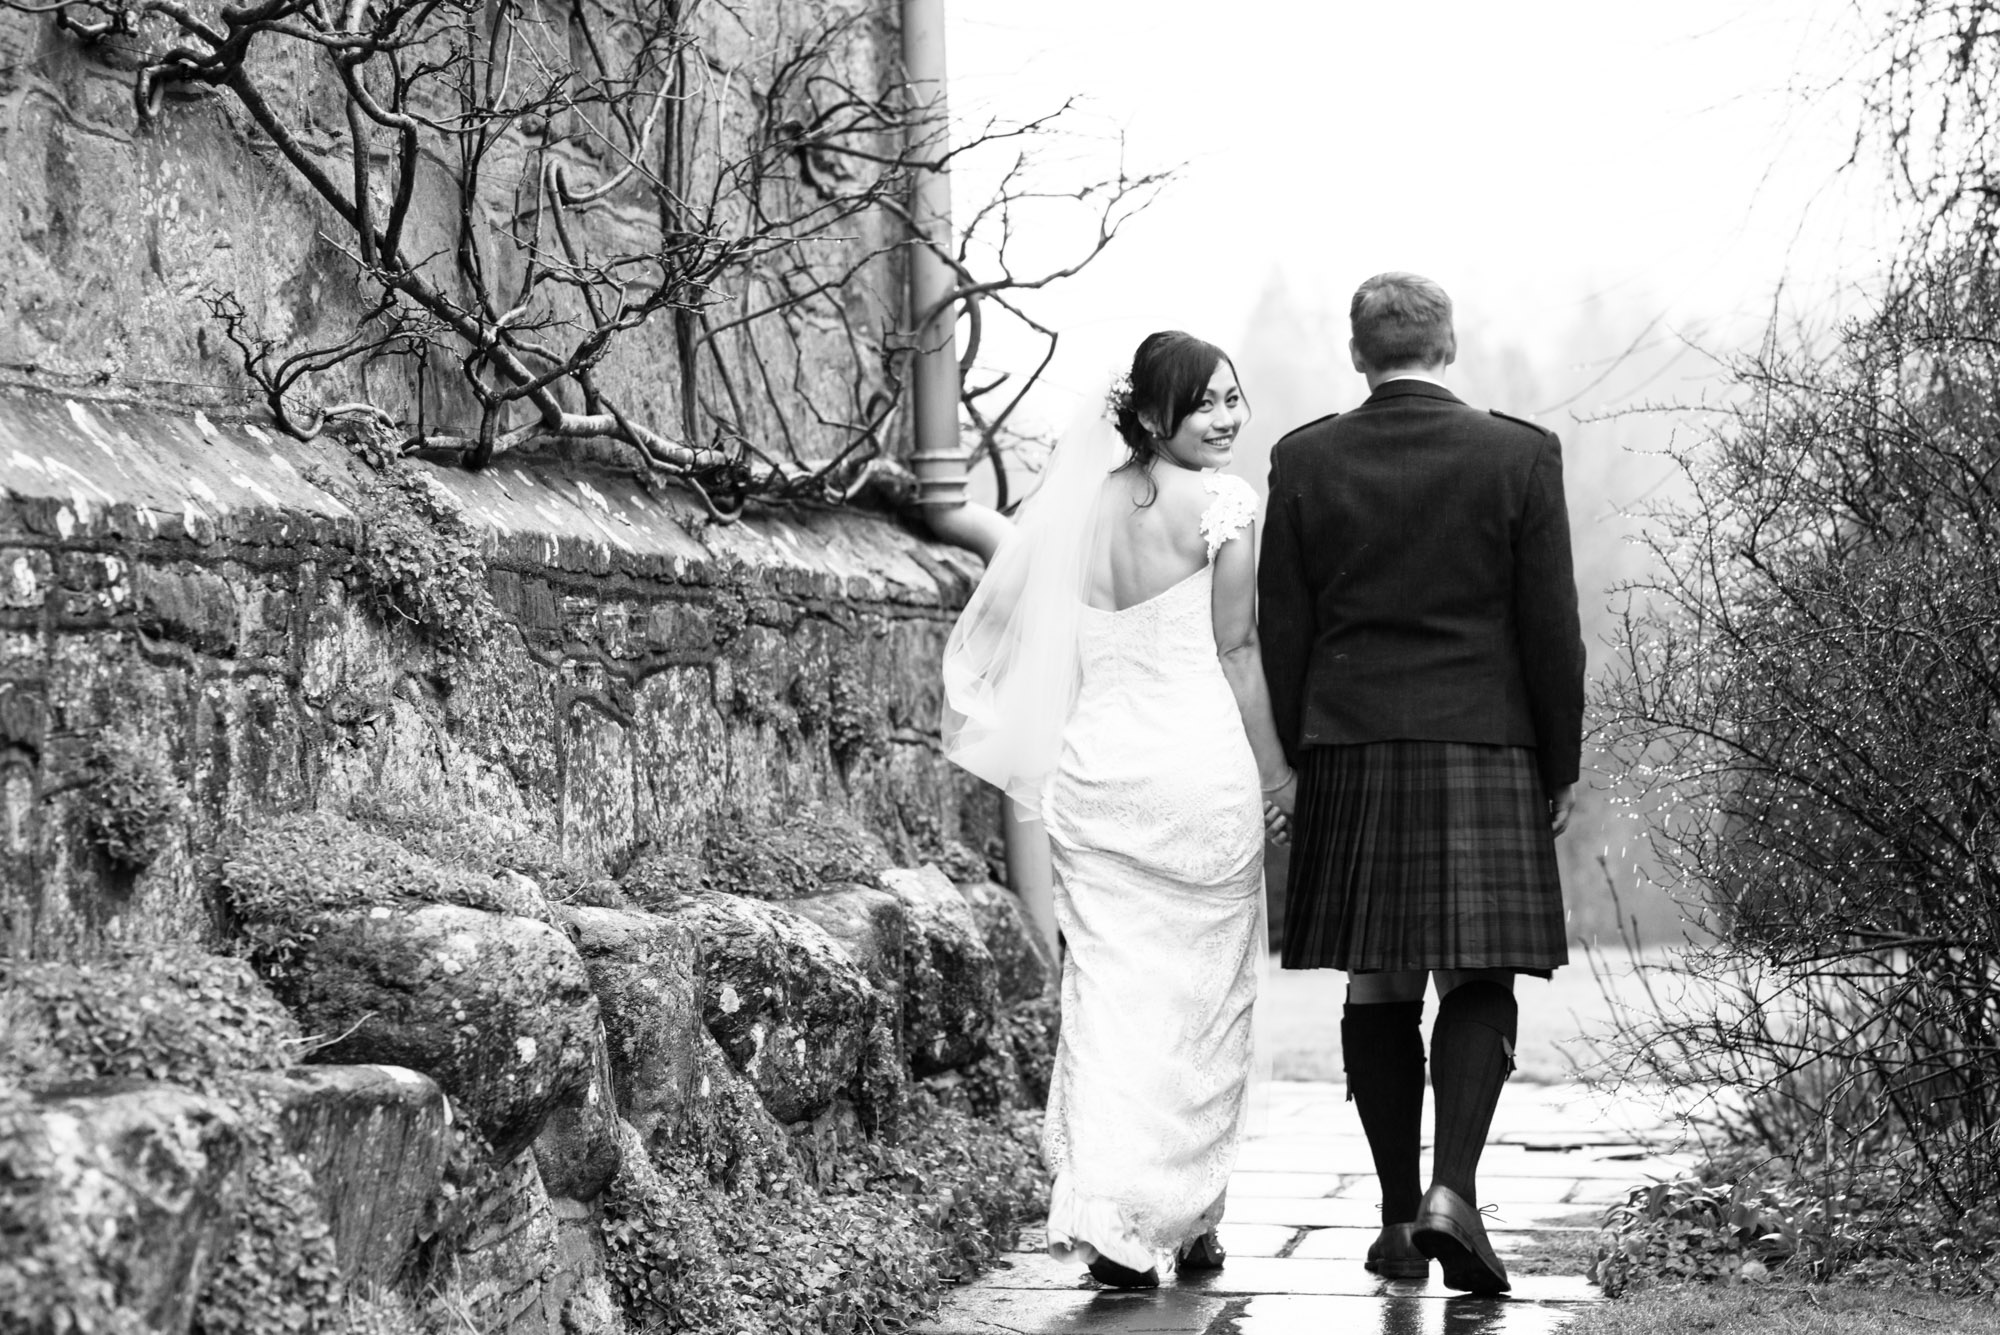 The bride glances round as she walks for her wedding photography at Askham Hall.